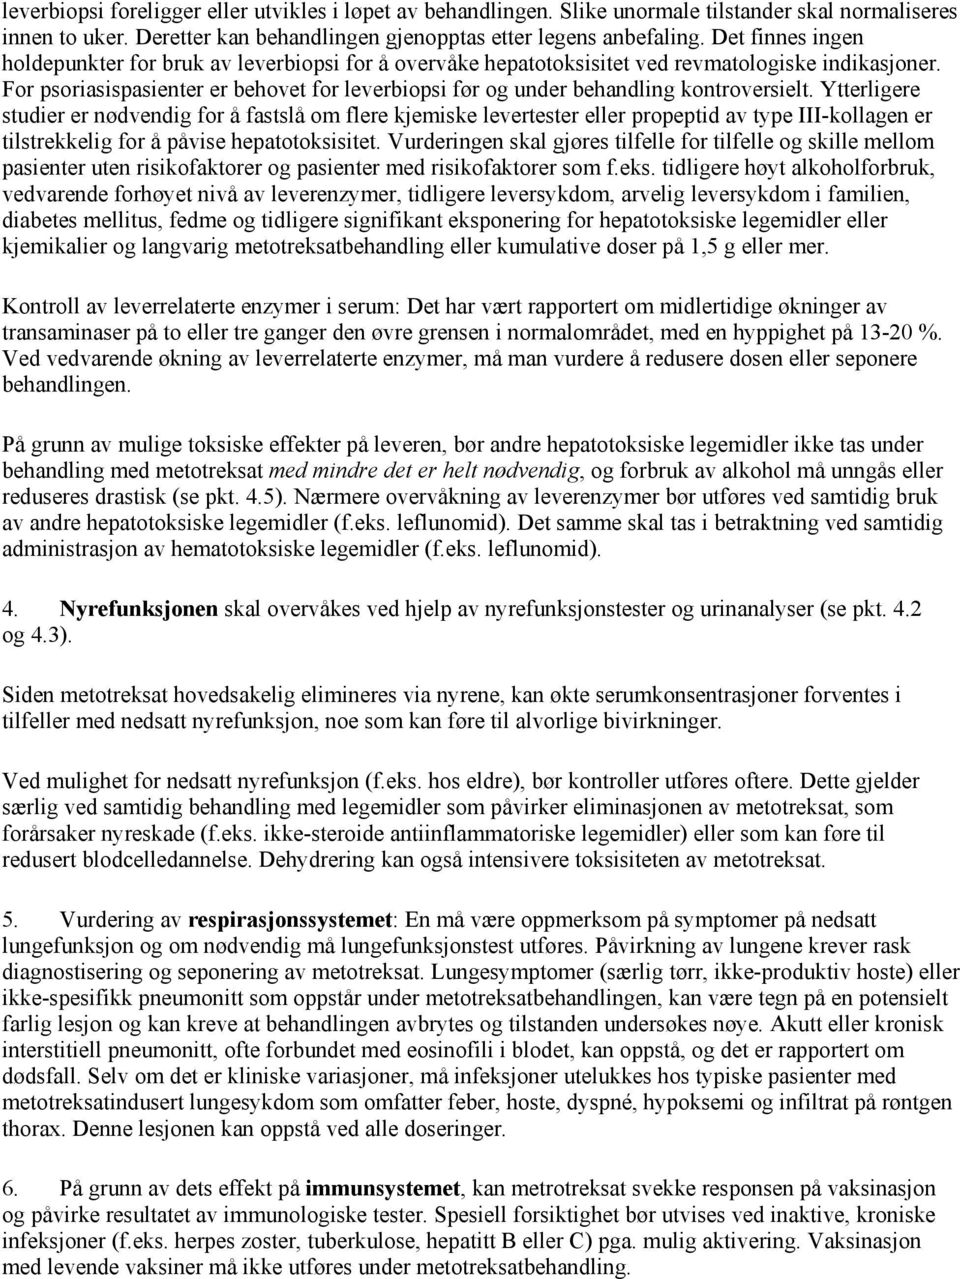 For psoriasispasienter er behovet for leverbiopsi før og under behandling kontroversielt.